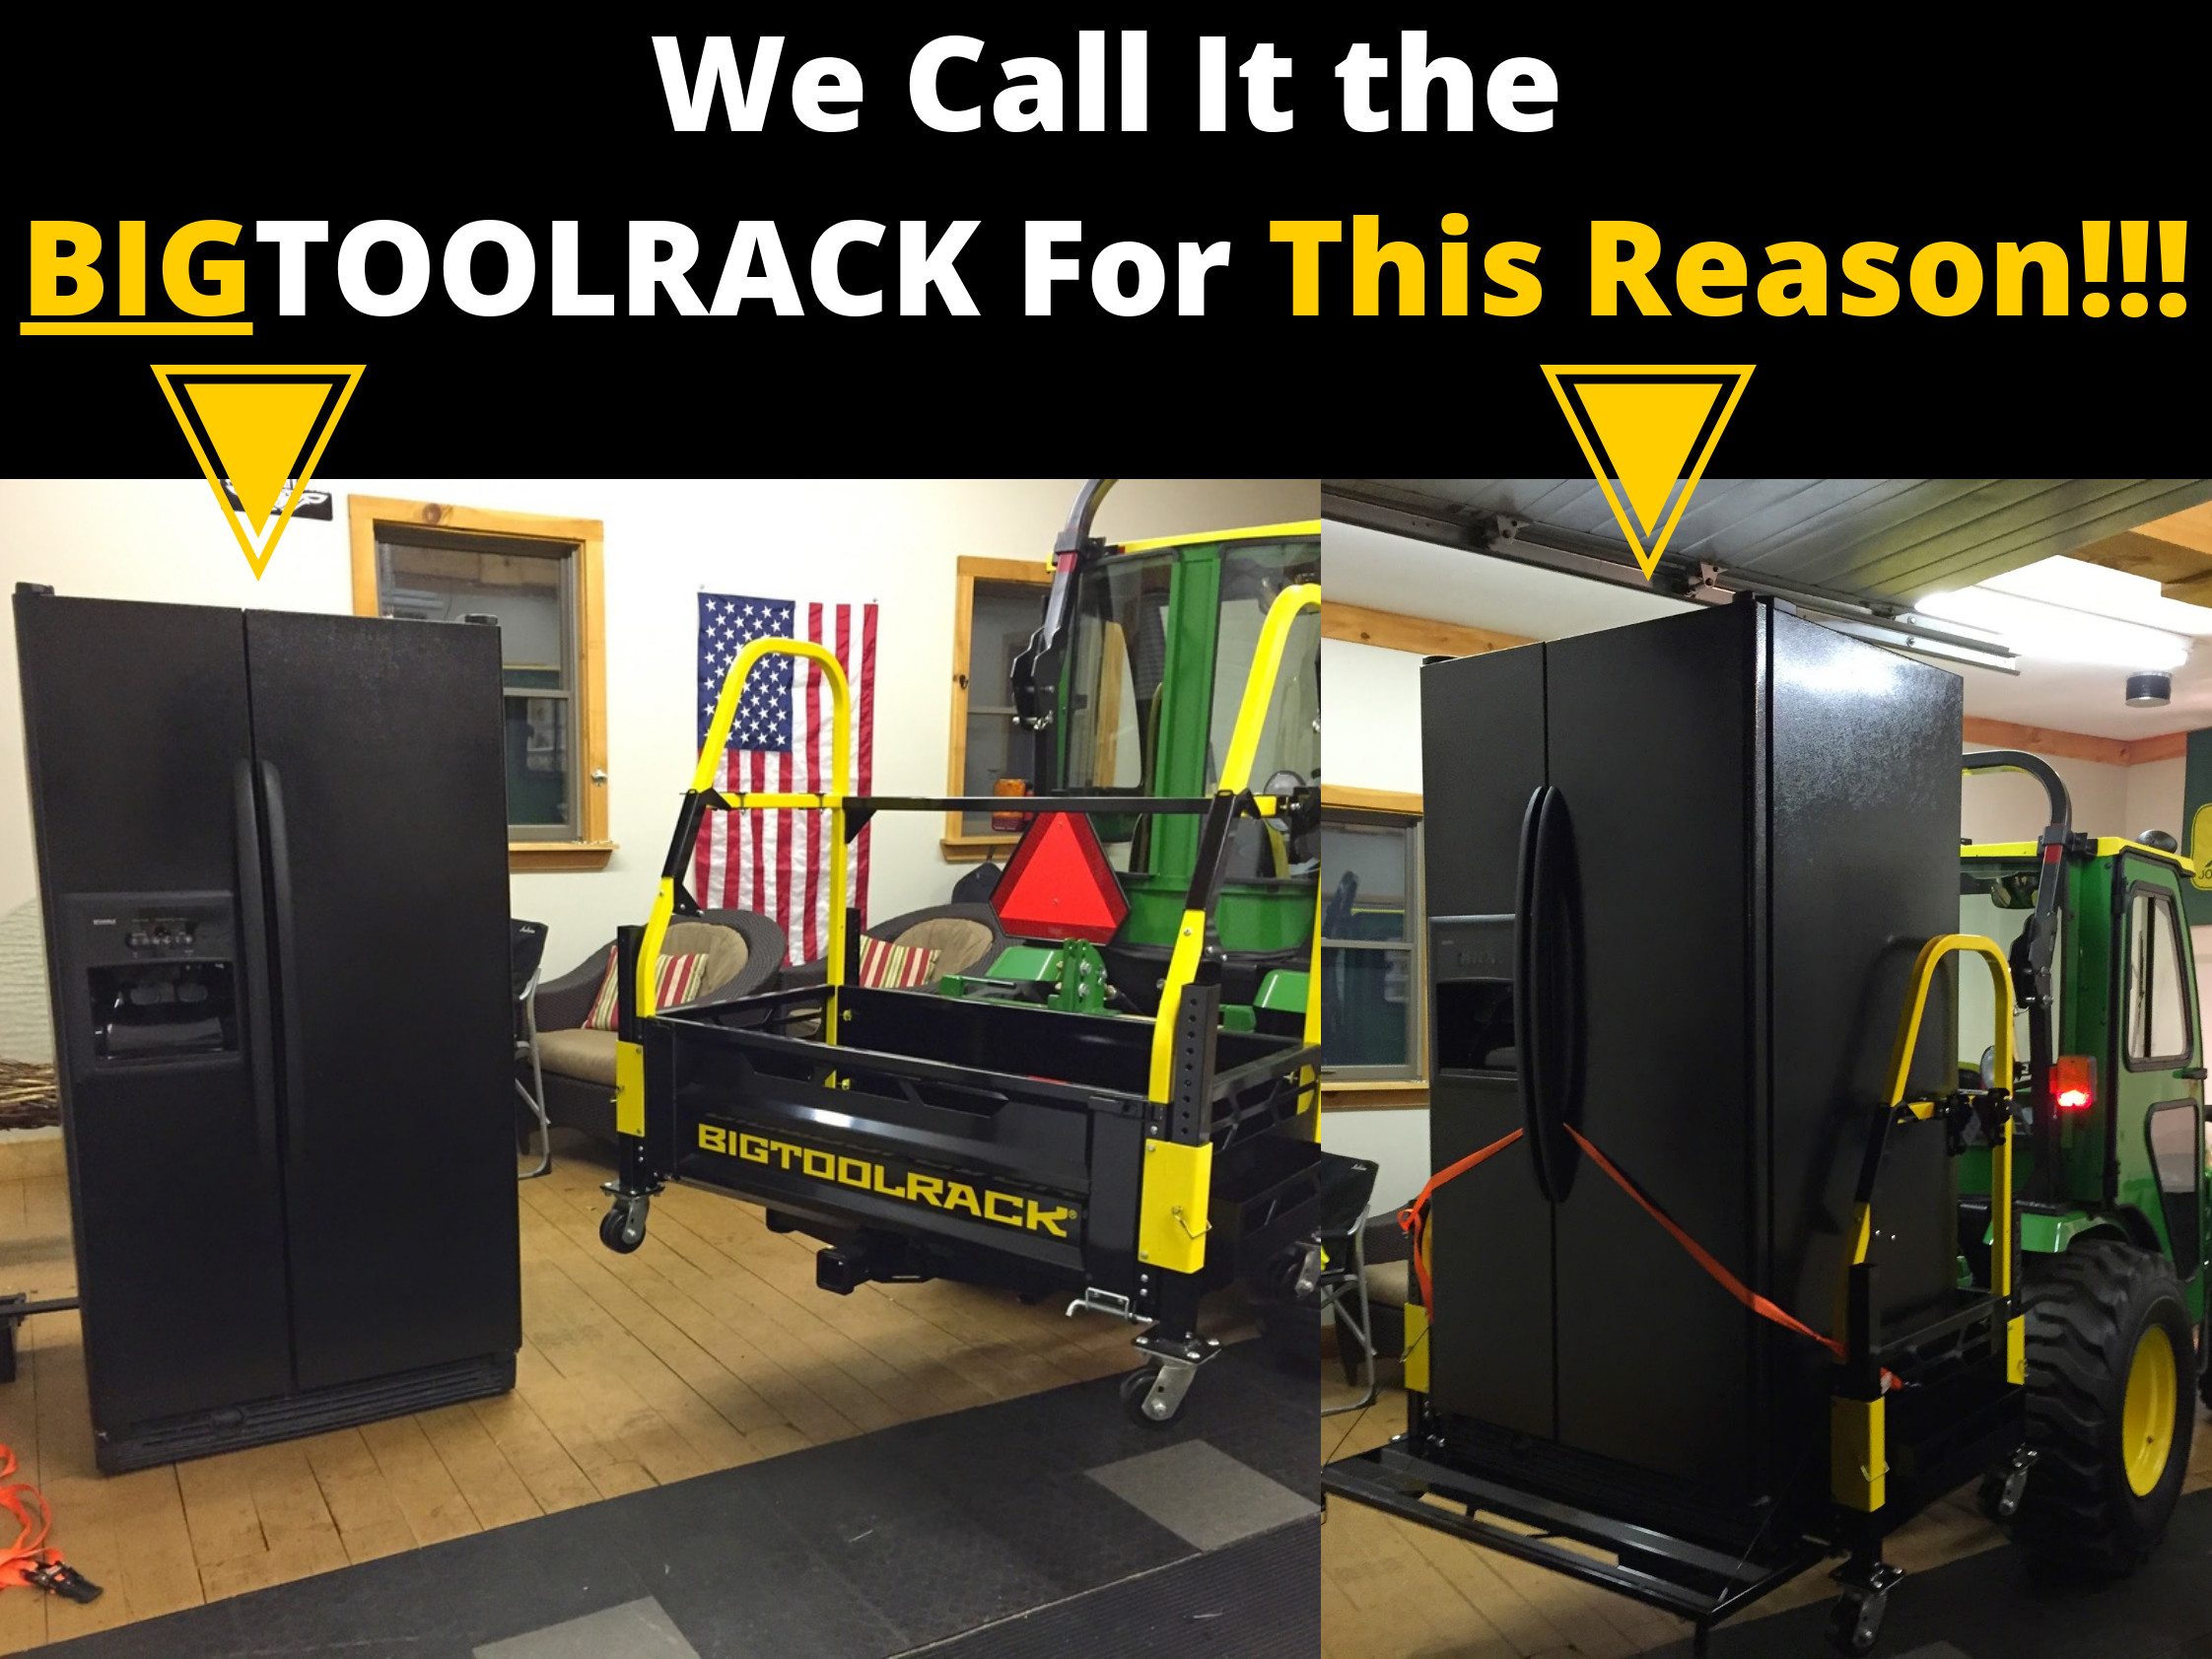 Bigtoolrack tractor carry all counterweight traction ballast box unloading and loading with tractor